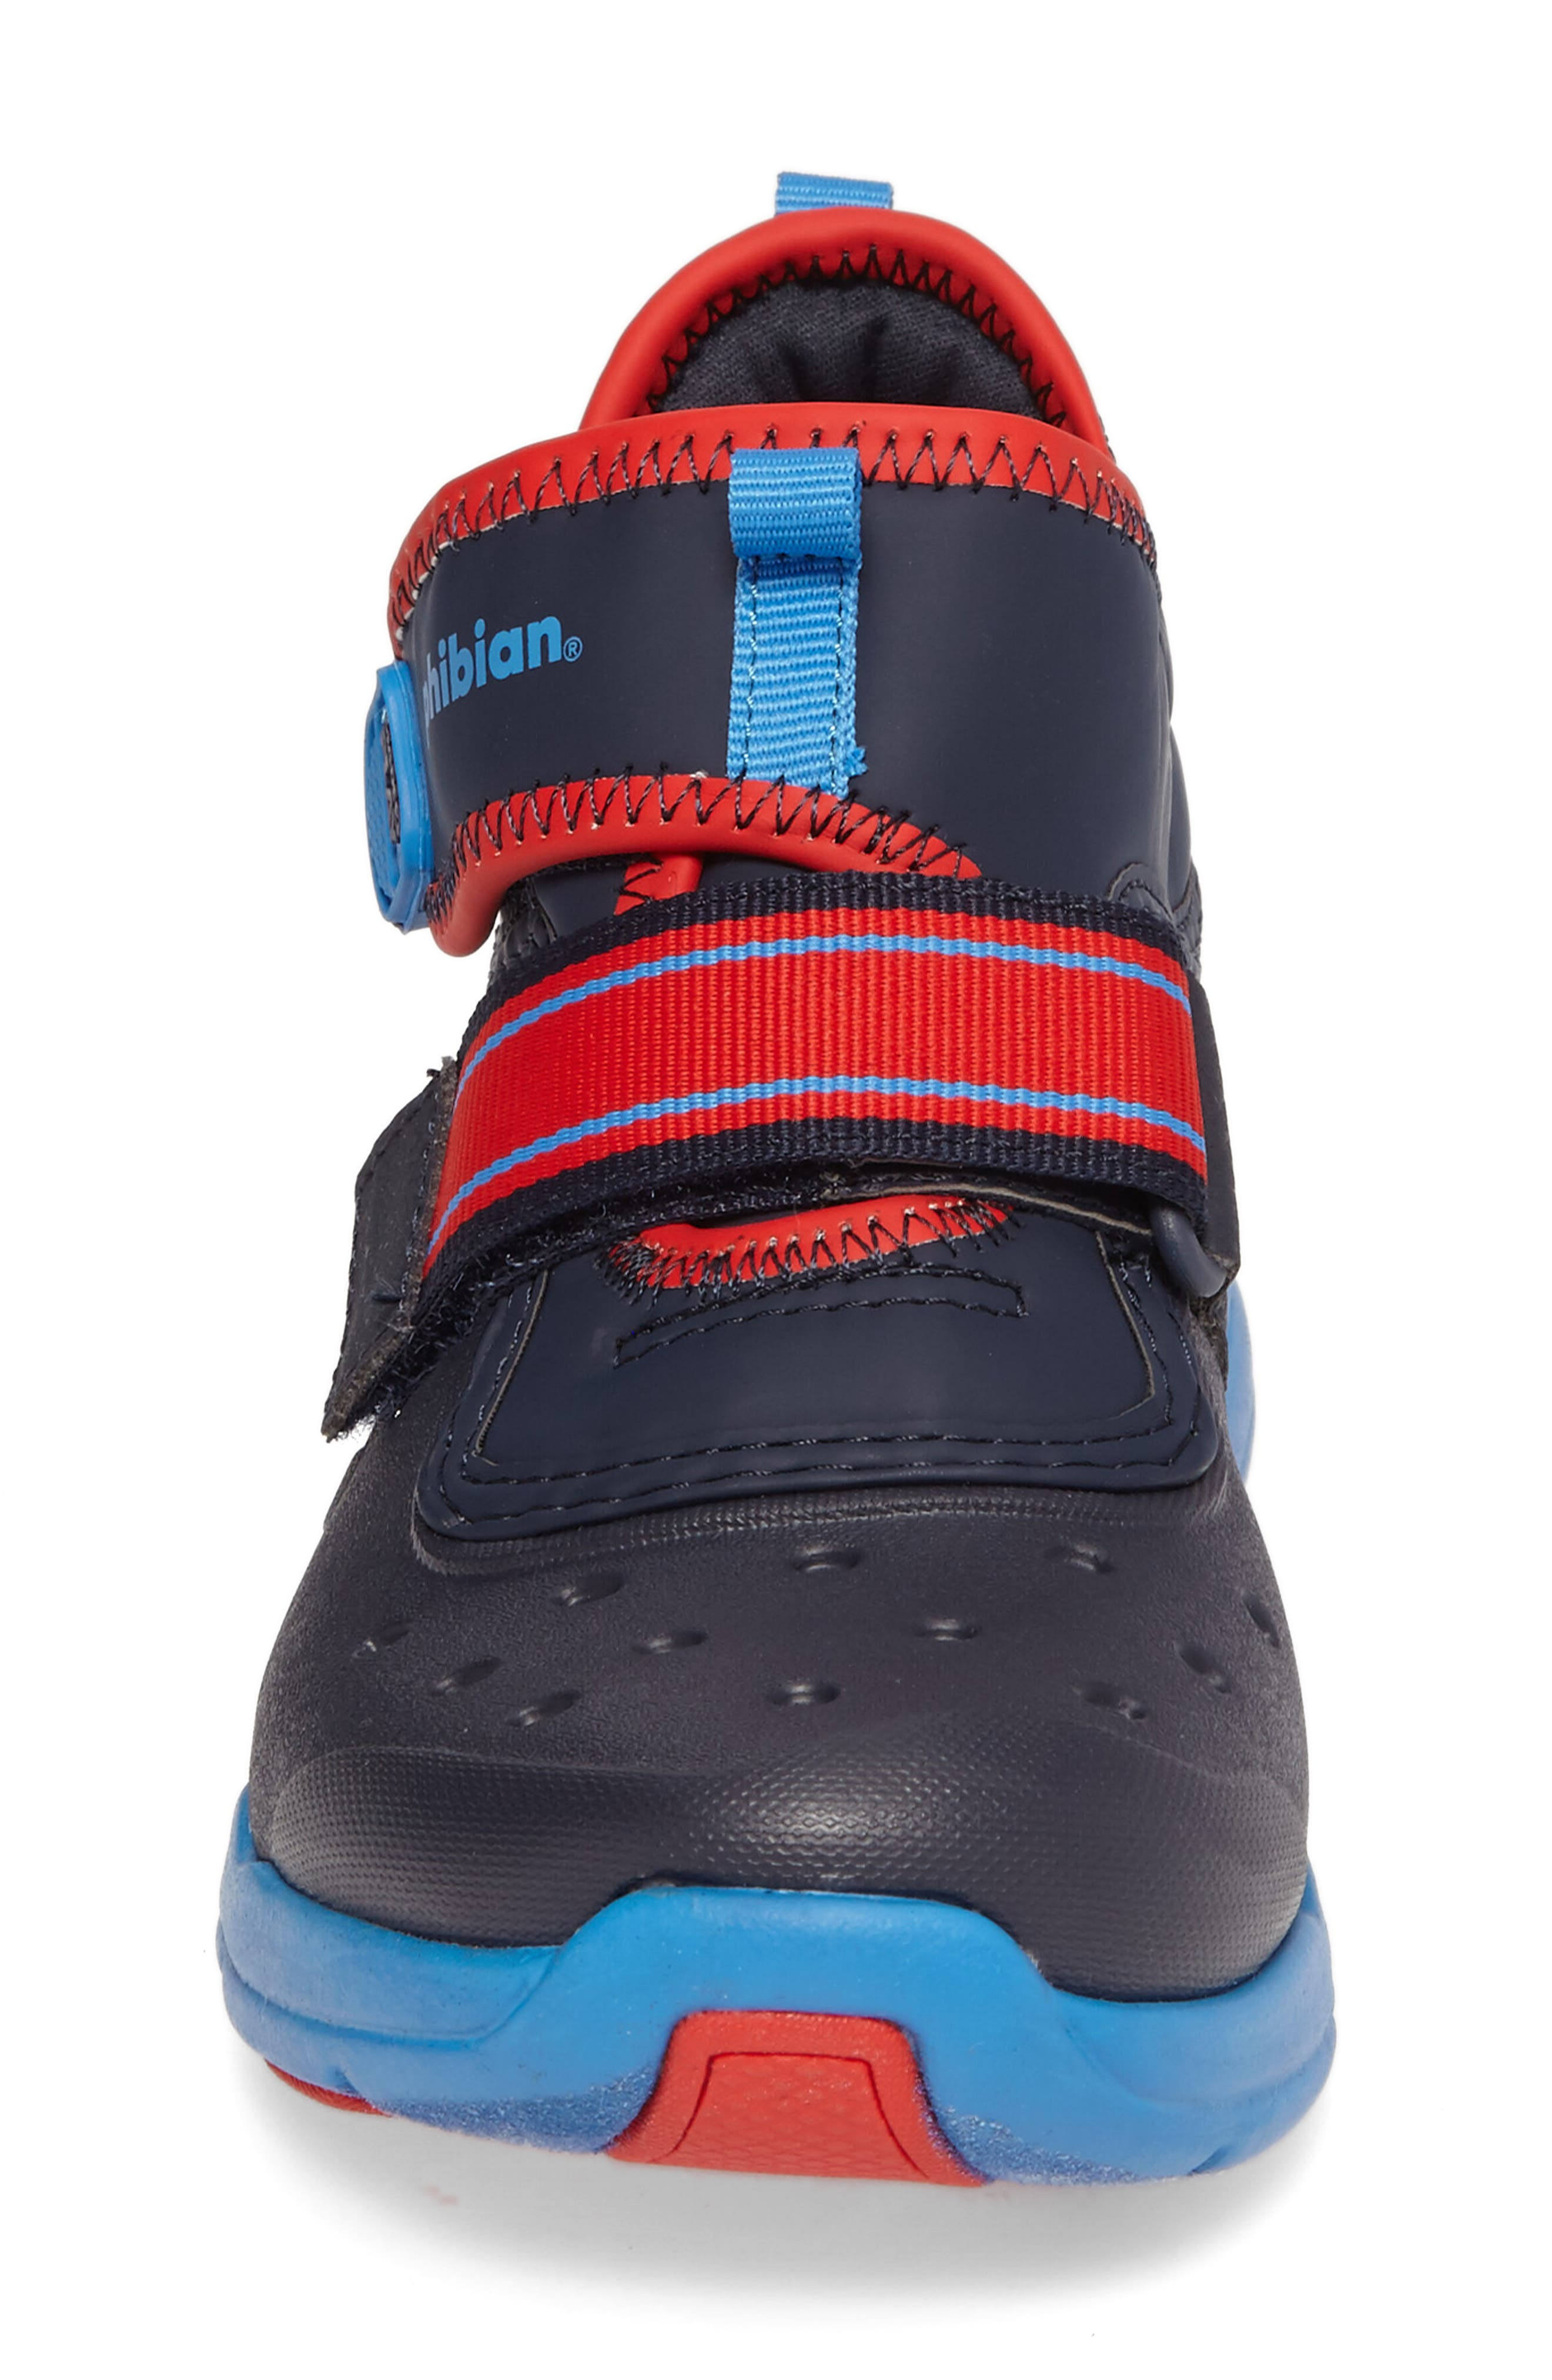 Made2Play<sup>®</sup> Phibian Mid Top Sneaker,                             Alternate thumbnail 8, color,